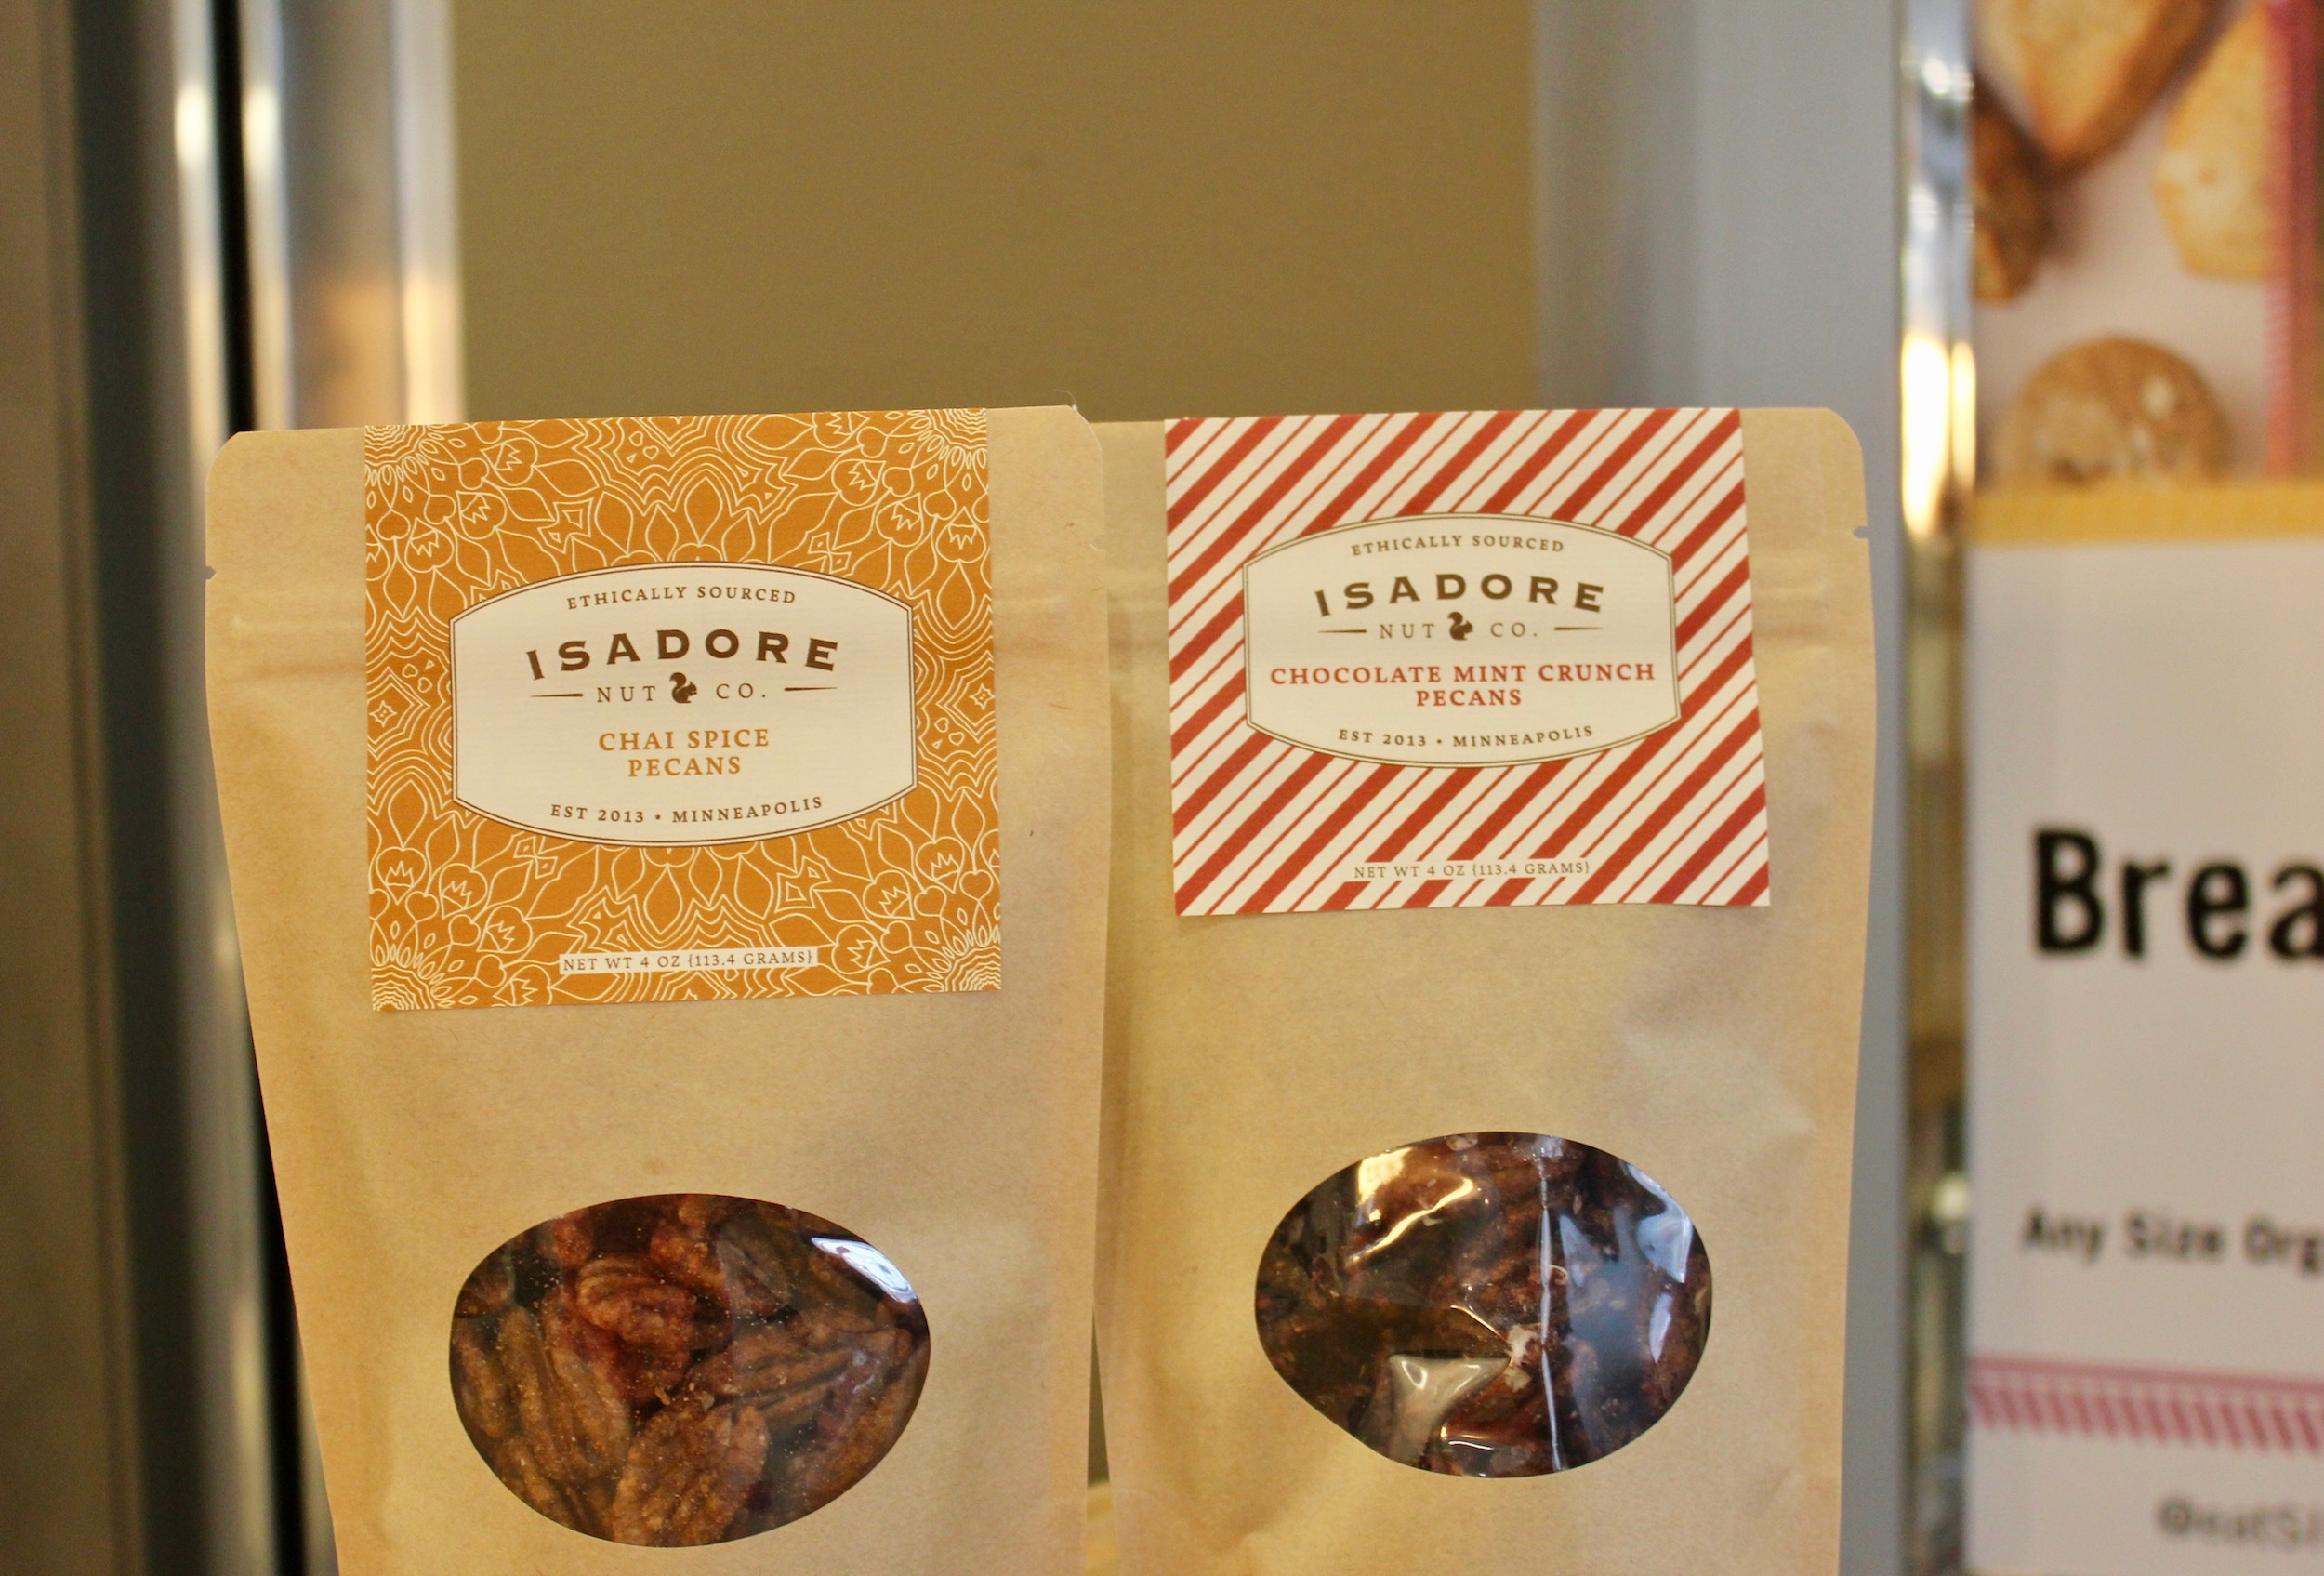 In addition to it's staple of nut mixes, Isadore Nut Co. has two seasonal batches out for the holidays: Chai Spice Pecans and Chocolate Mint Crunch Pecans.